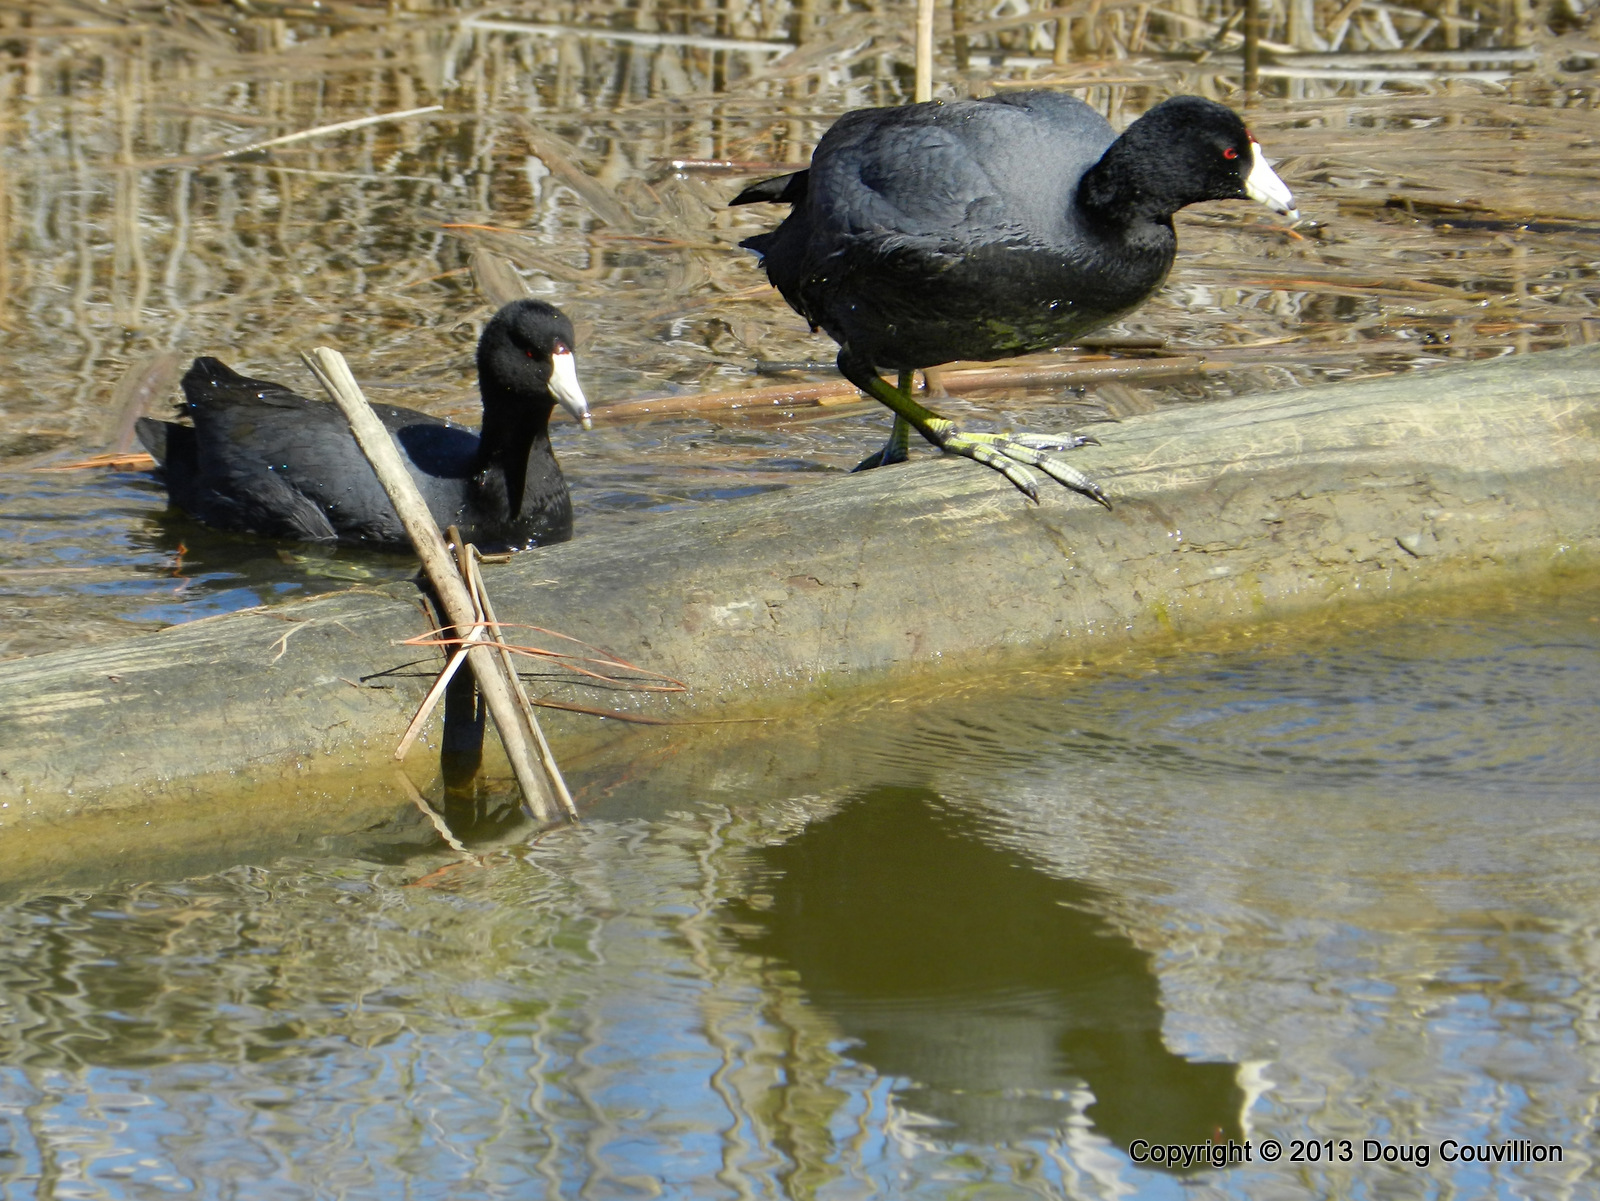 photograph of American Coots in the water